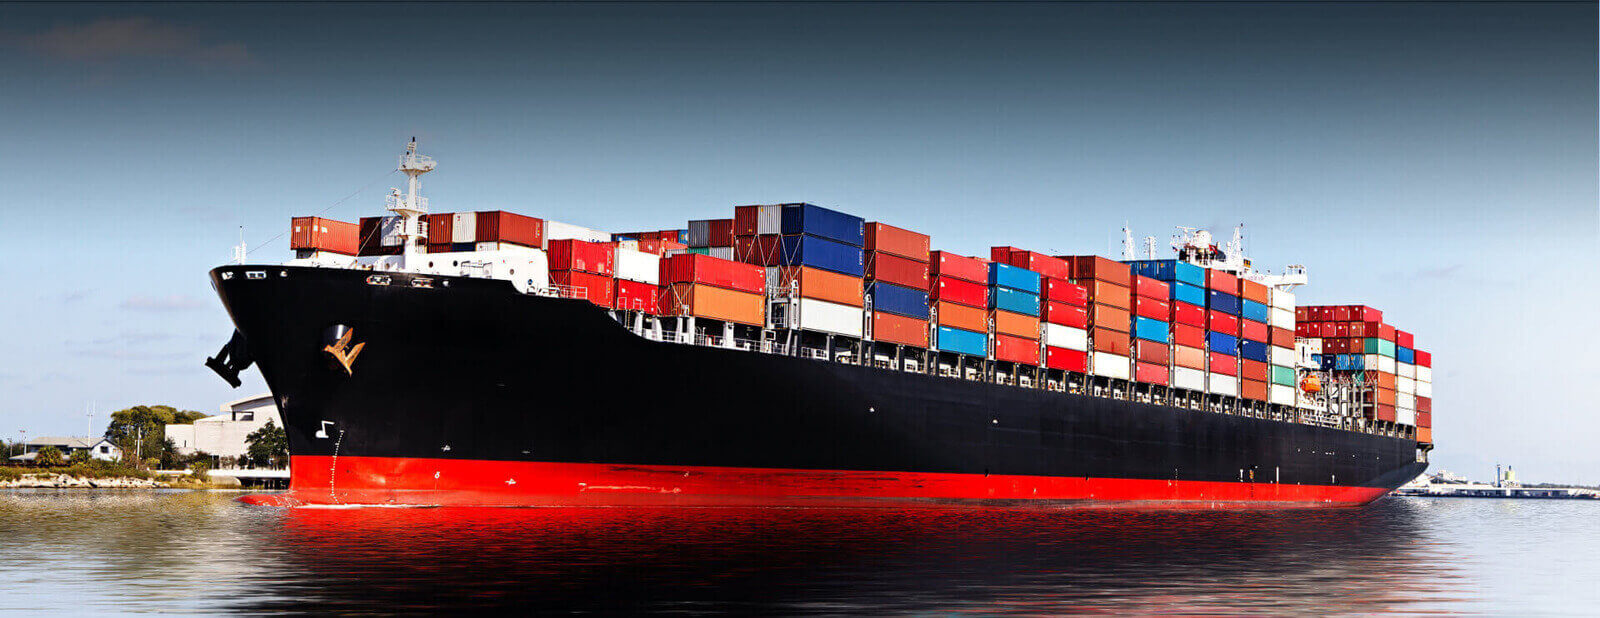 Ship Sea Cargo To India From Uk At Lowest Rates Cargo To